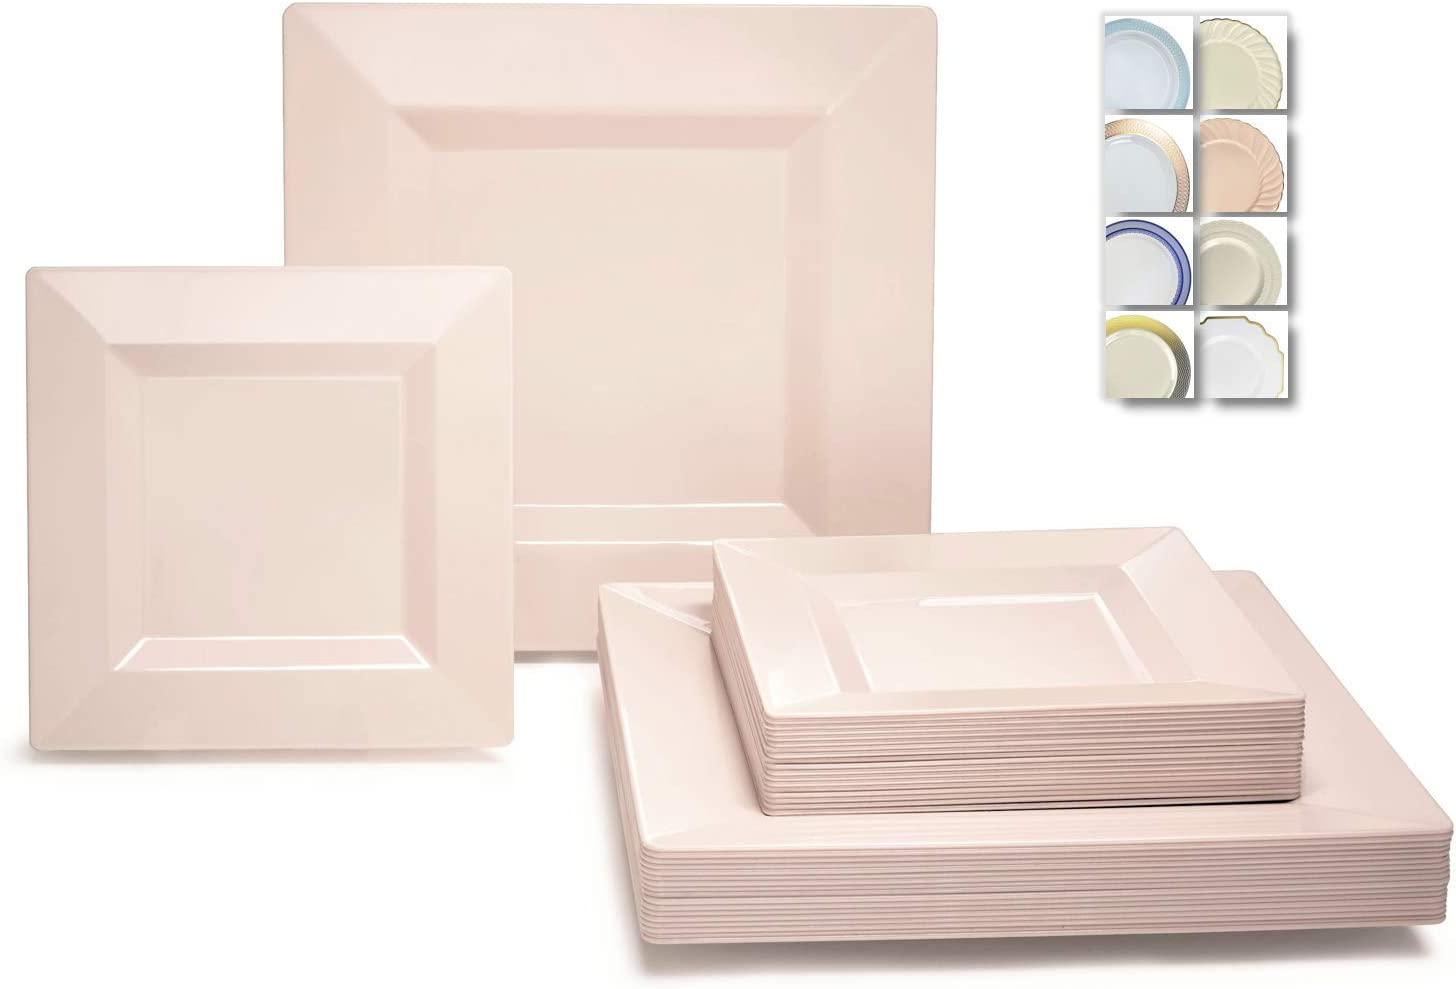 OCCASIONS 240 Plates Pack,(120 Guests) Wedding Party Square Disposable Plastic Plates Set -120 x 9.5'' Dinner + 120 x 6.5'' Dessert (Square Blush Pink) 617y2BDDQ15L